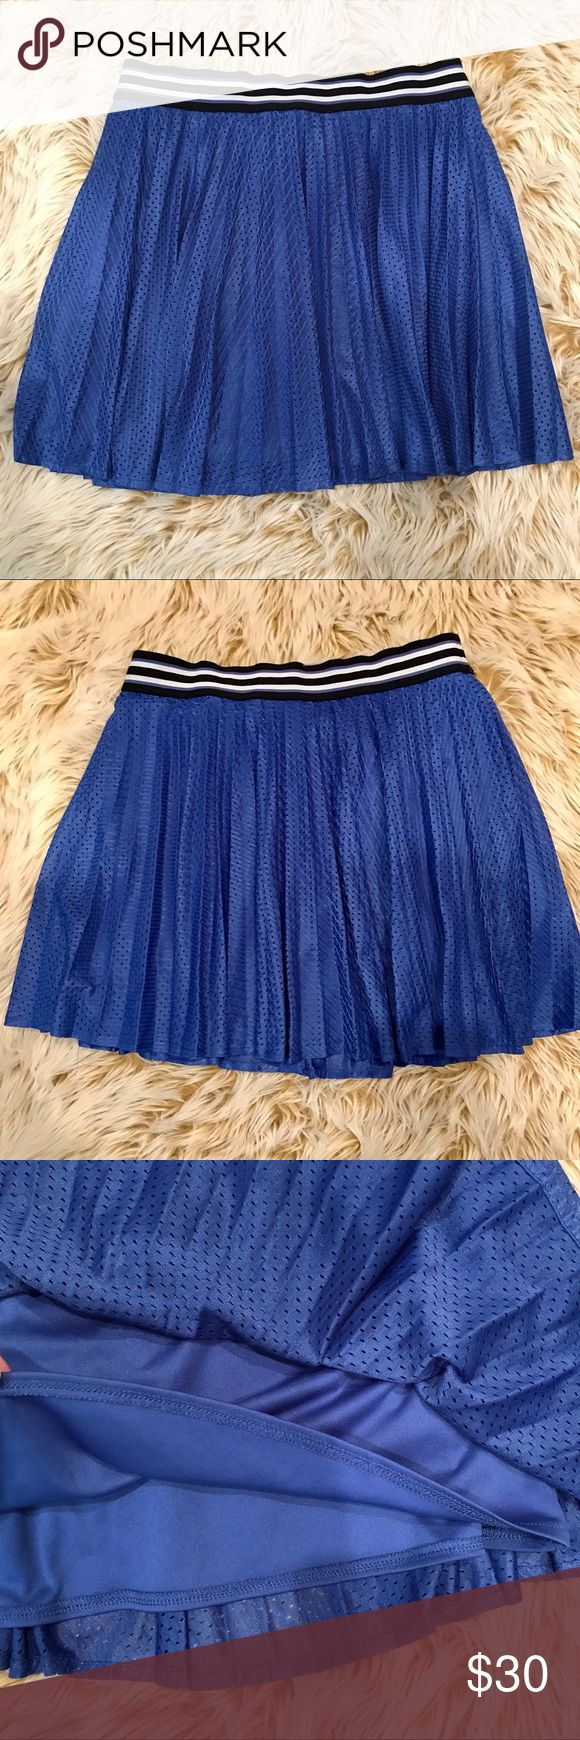 "Aeropostale mini-pleat skirt with athletic style! Aeropostale mini-pleat skirt with athletic style! Super-cute royal blue jersey type soft & stretchy fabric with a black and white striped waistband! Flowy, lined and would pair perfectly with a silk bomber -if only I was that cool! Measured lying flat: waist: 13"", length 15"", stretchy waistband 1.5"" in width. Please don't hesitate to ask any questions! Happy Poshing, offers welcome and bundle for the most savings!!! Aeropostale Skirts Mini"